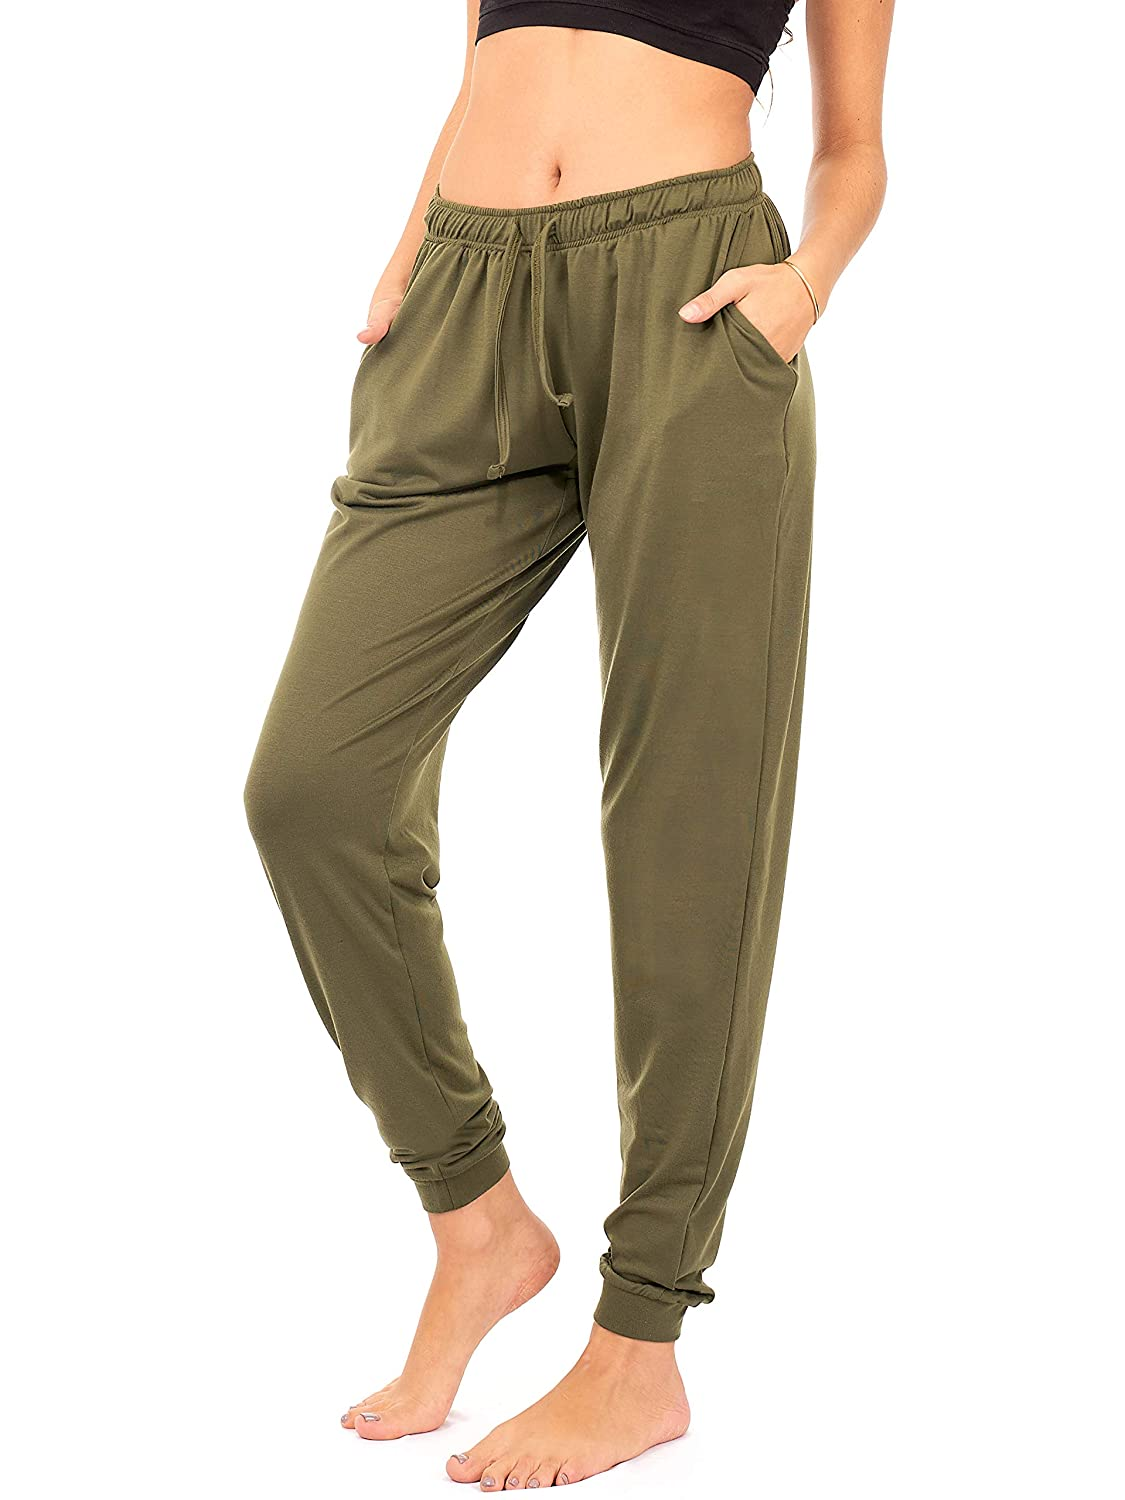 DEAR SPARKLE Jogger with Pockets for Women Drawstring Lightweight Sweats Yoga Lounge Pants Plus Size P7